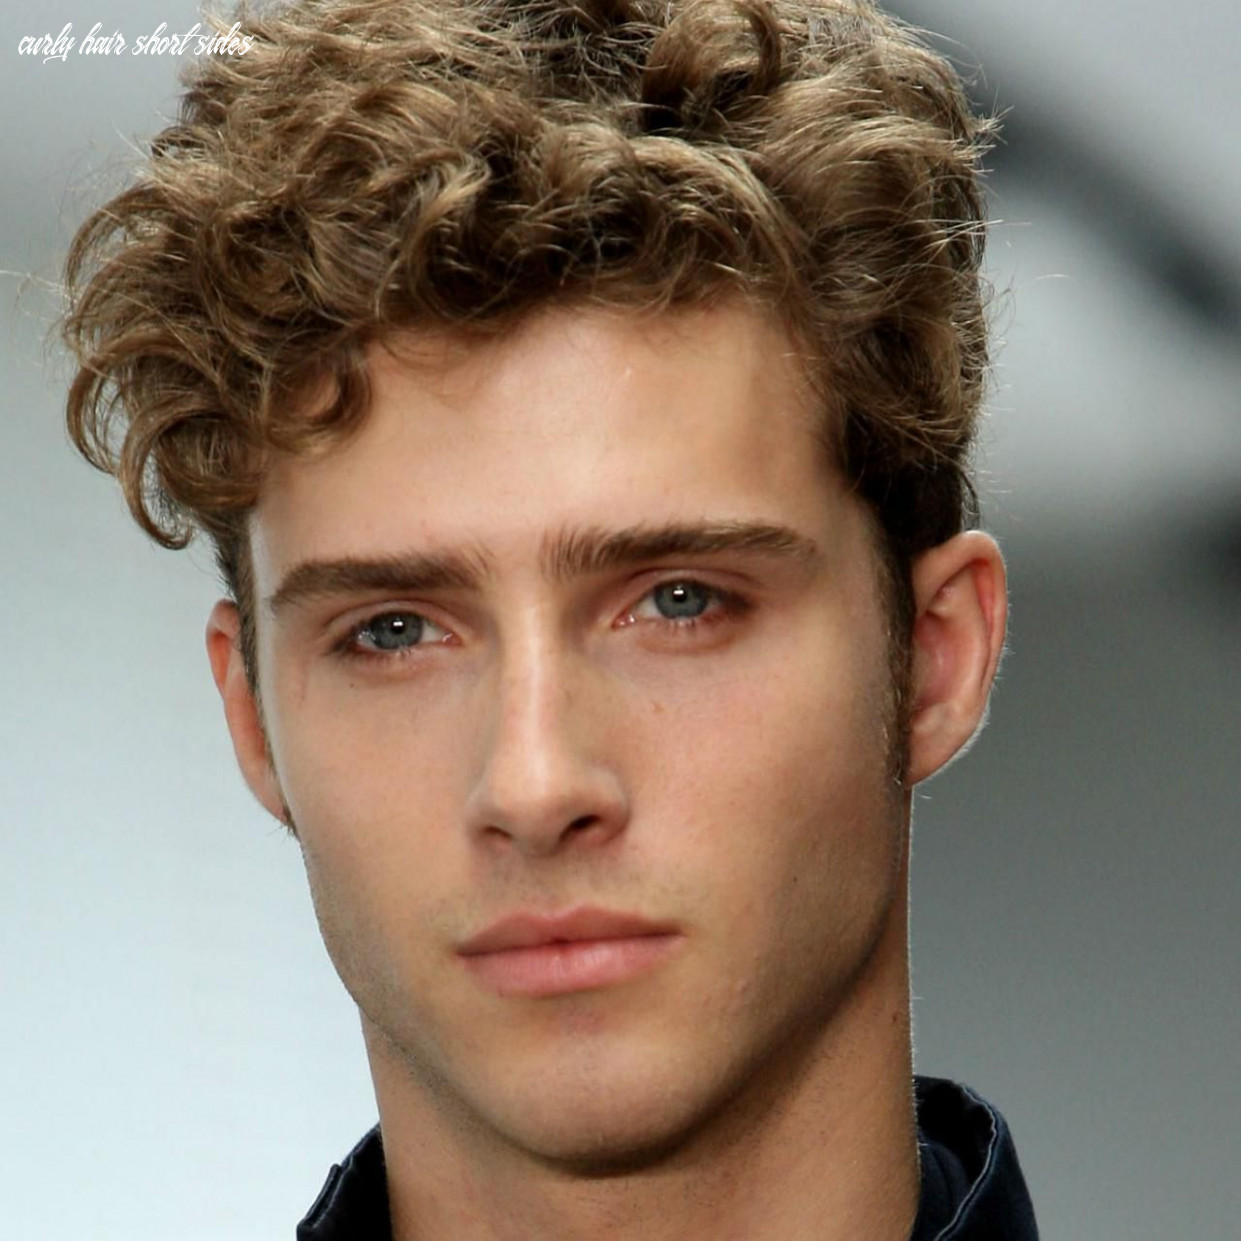 Having trouble with your curly hair? curly hair short sides